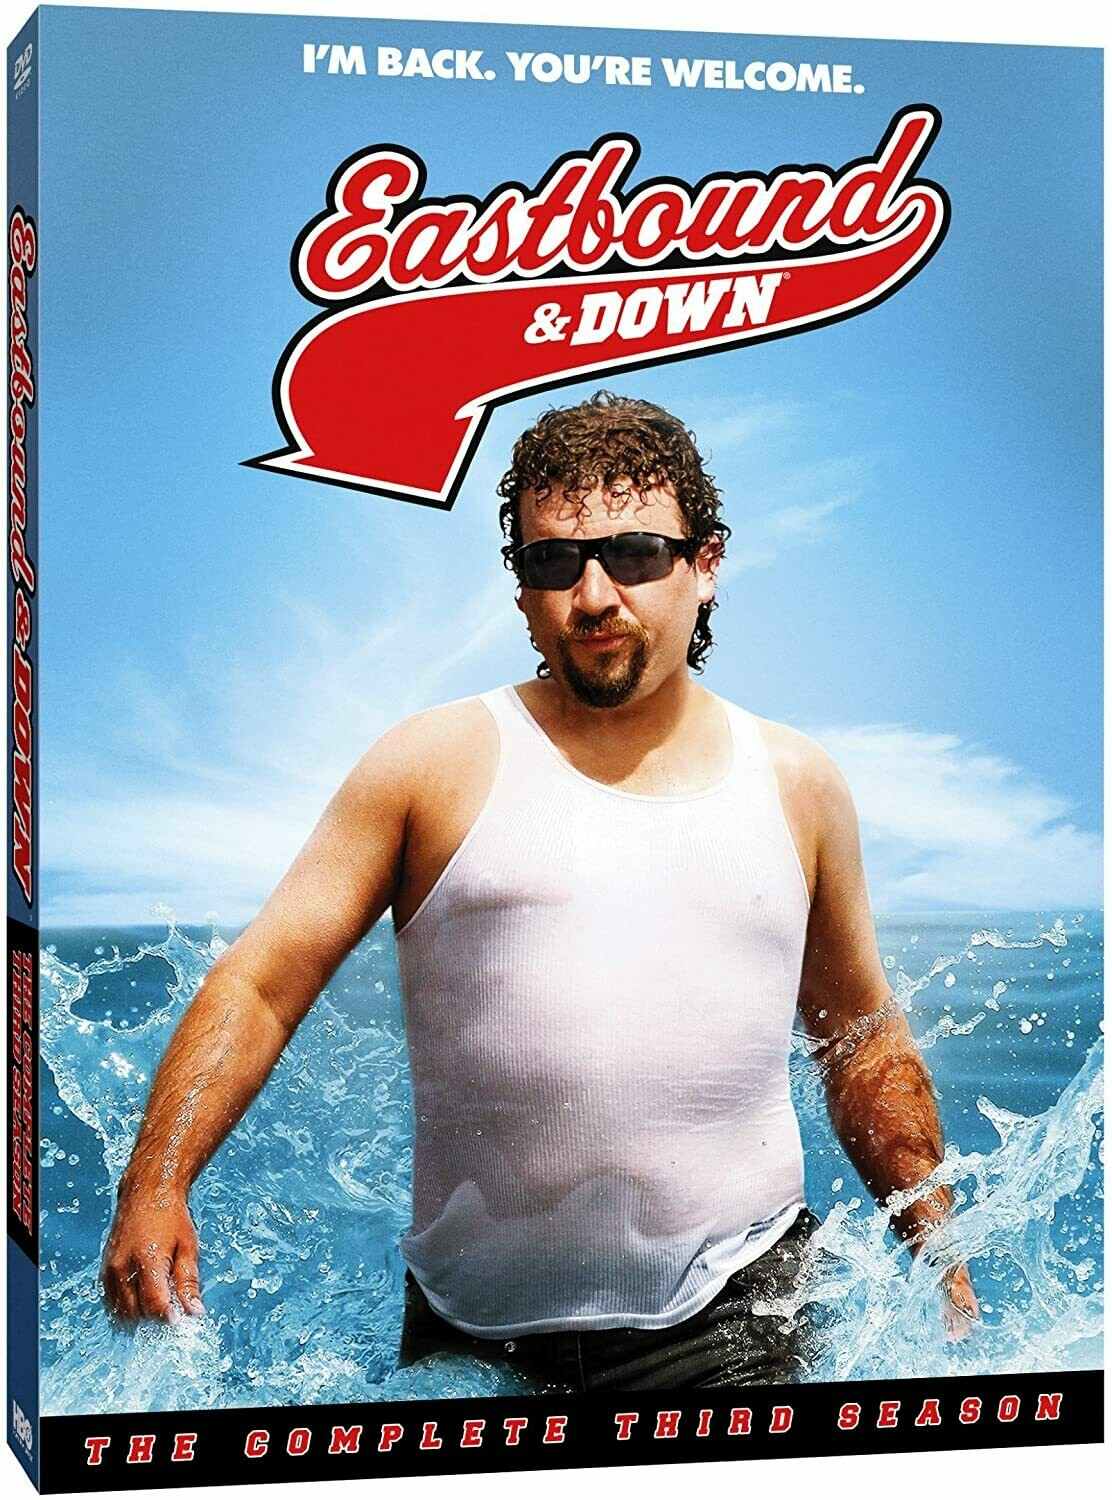 Eastbound & Down Season Three (7 day rental)